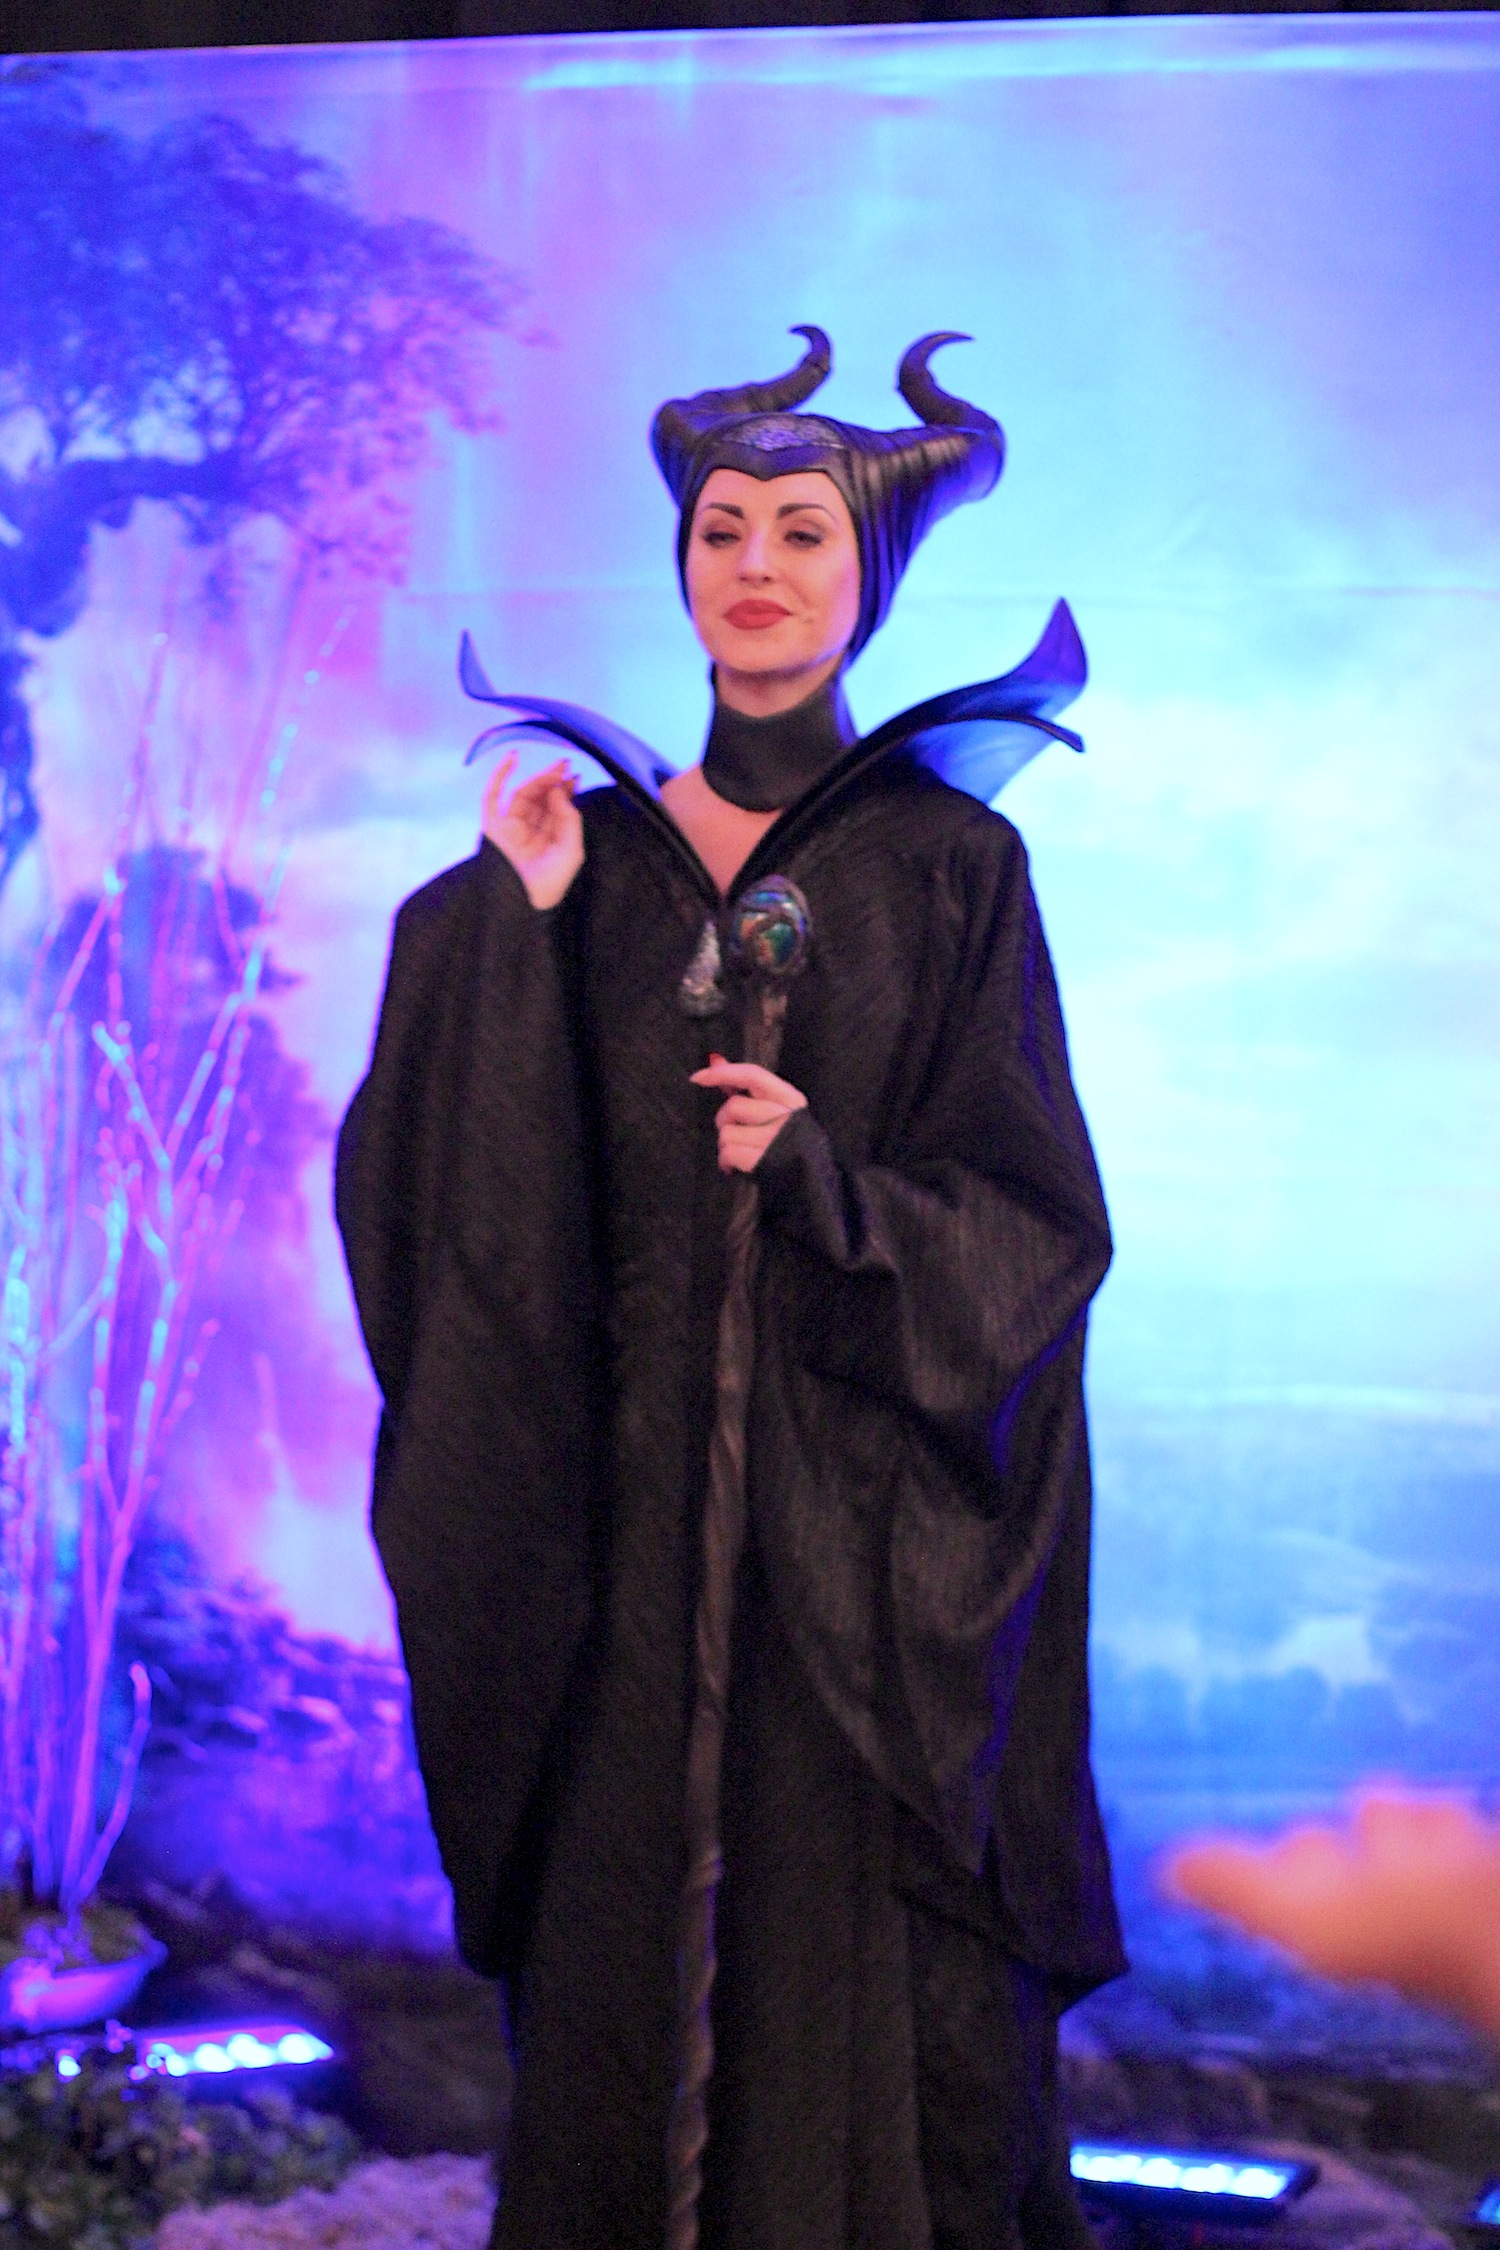 disney parks new maleficent movie face character greets